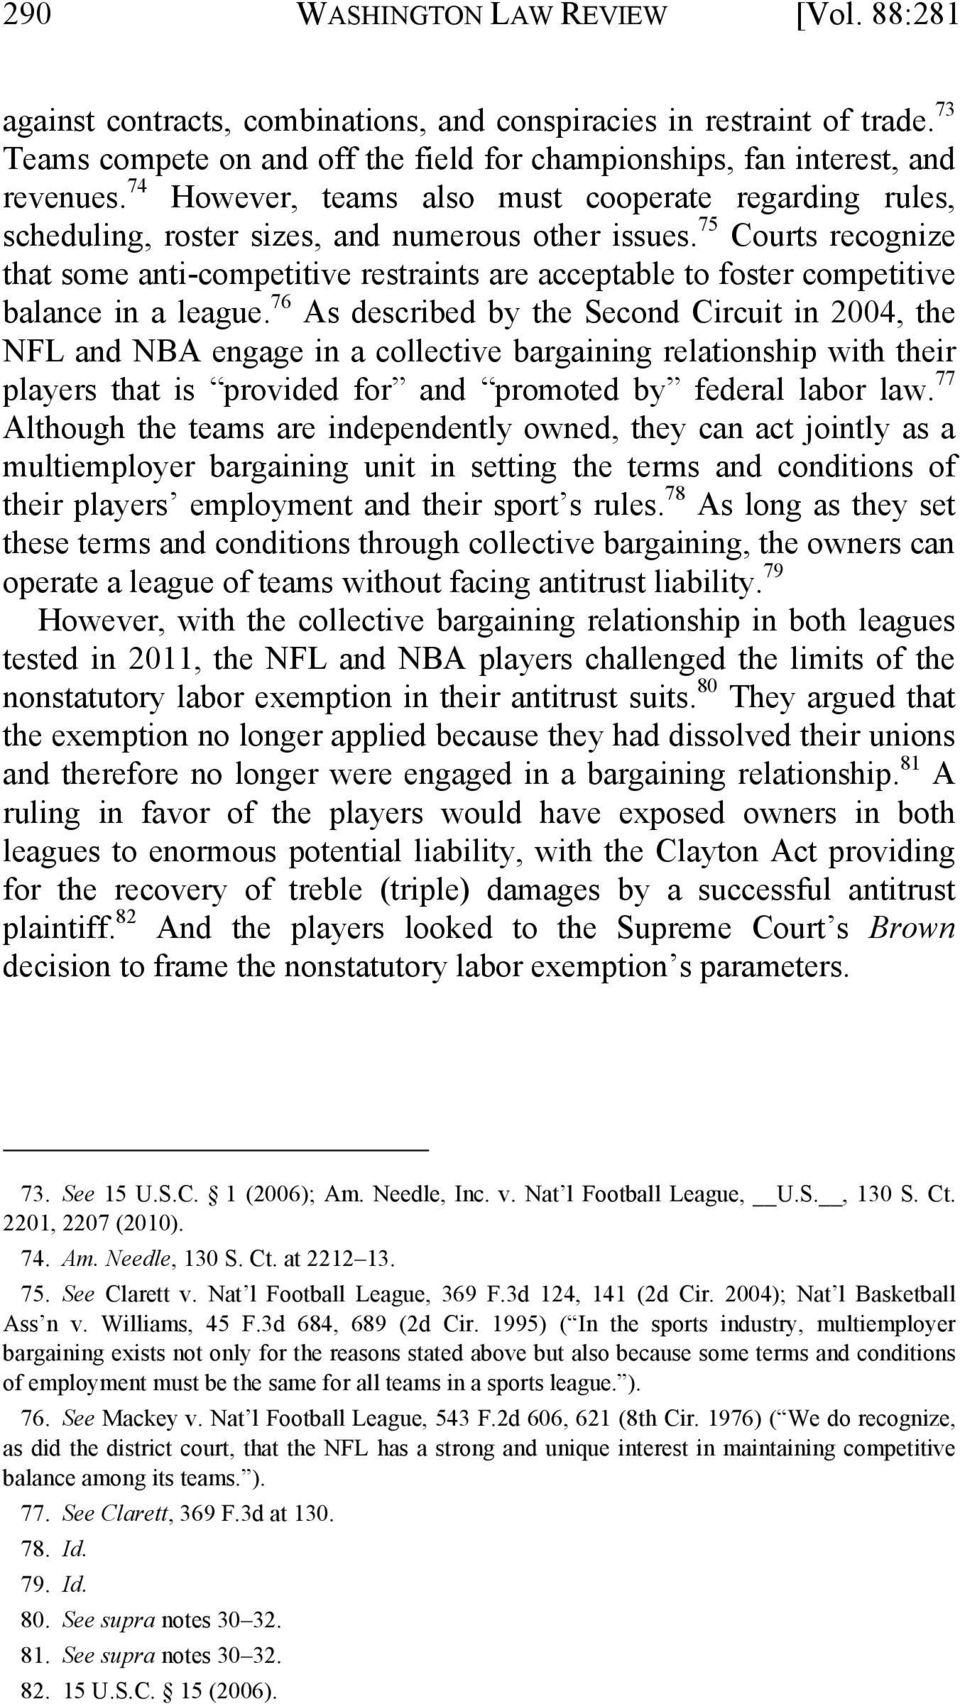 75 Courts recognize that some anti-competitive restraints are acceptable to foster competitive balance in a league.